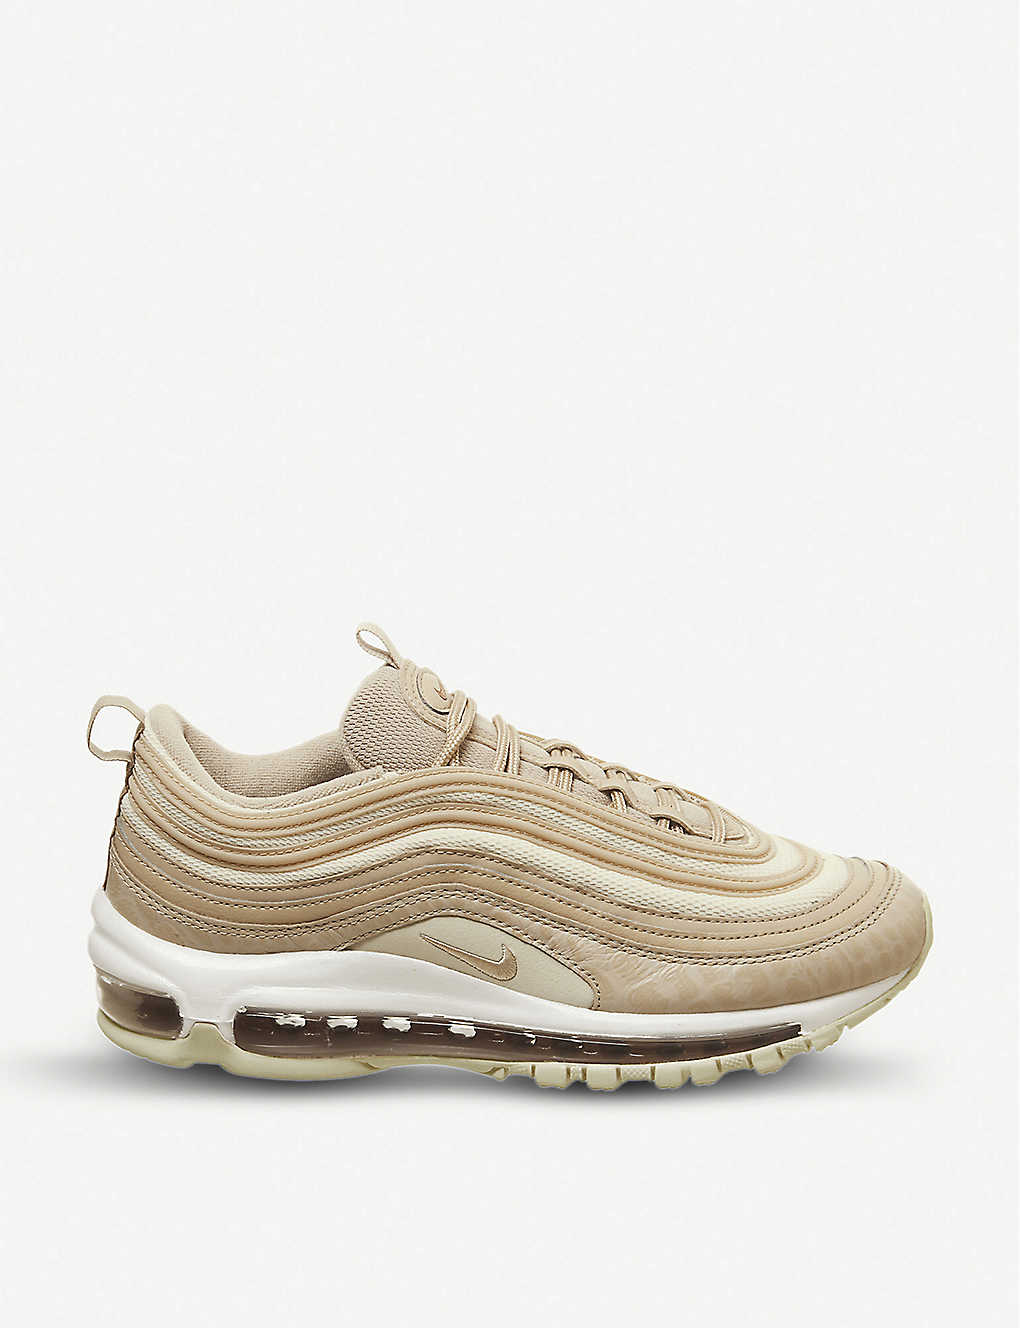 low priced e0454 439a3 Air Max 97 tonal leather trainers